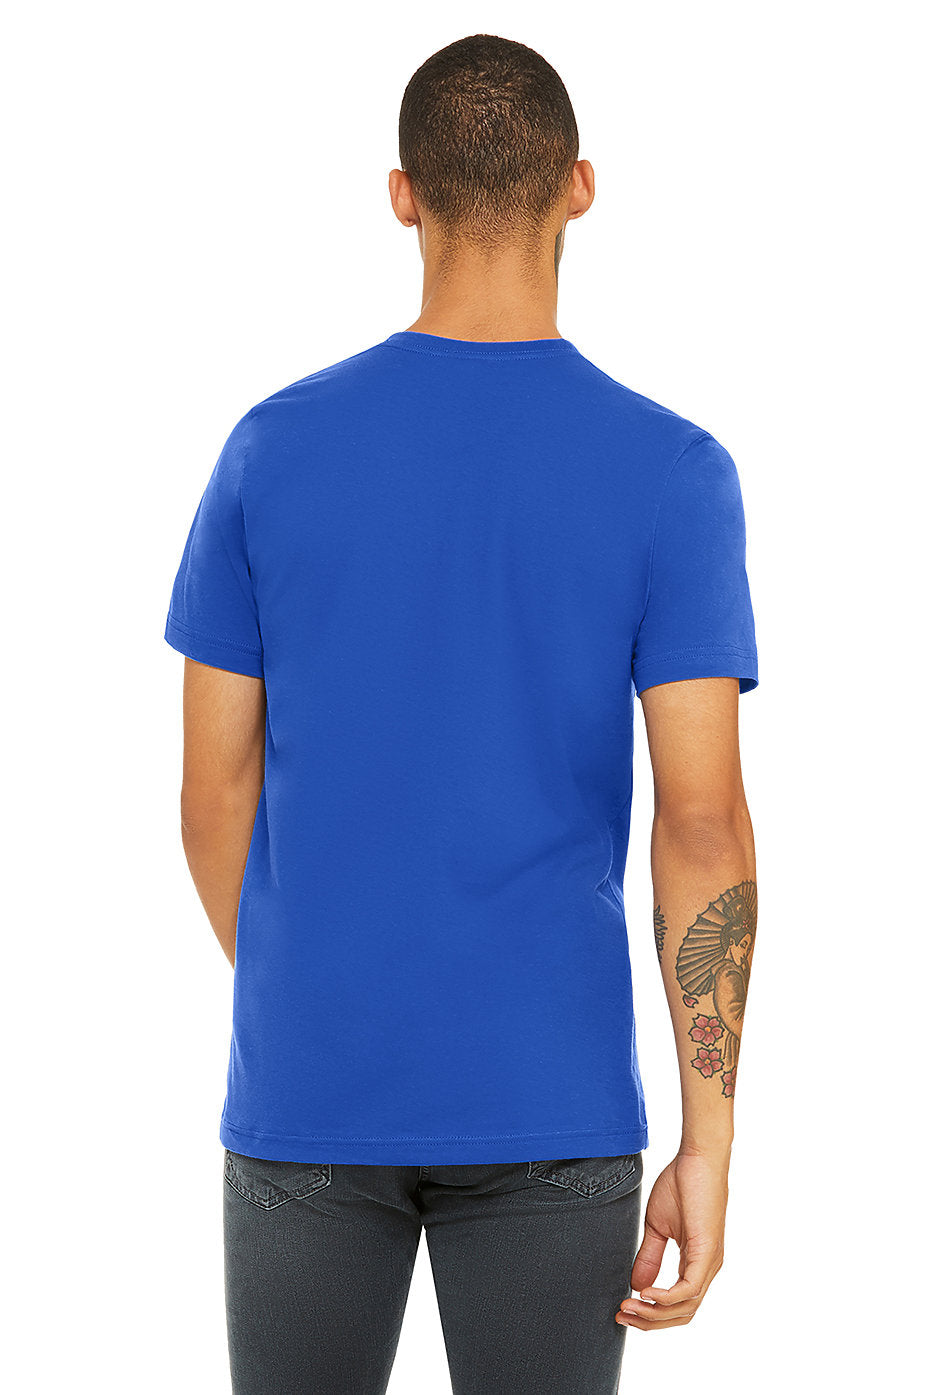 MENS 100% Cotton S/S Tee - Royal Blue